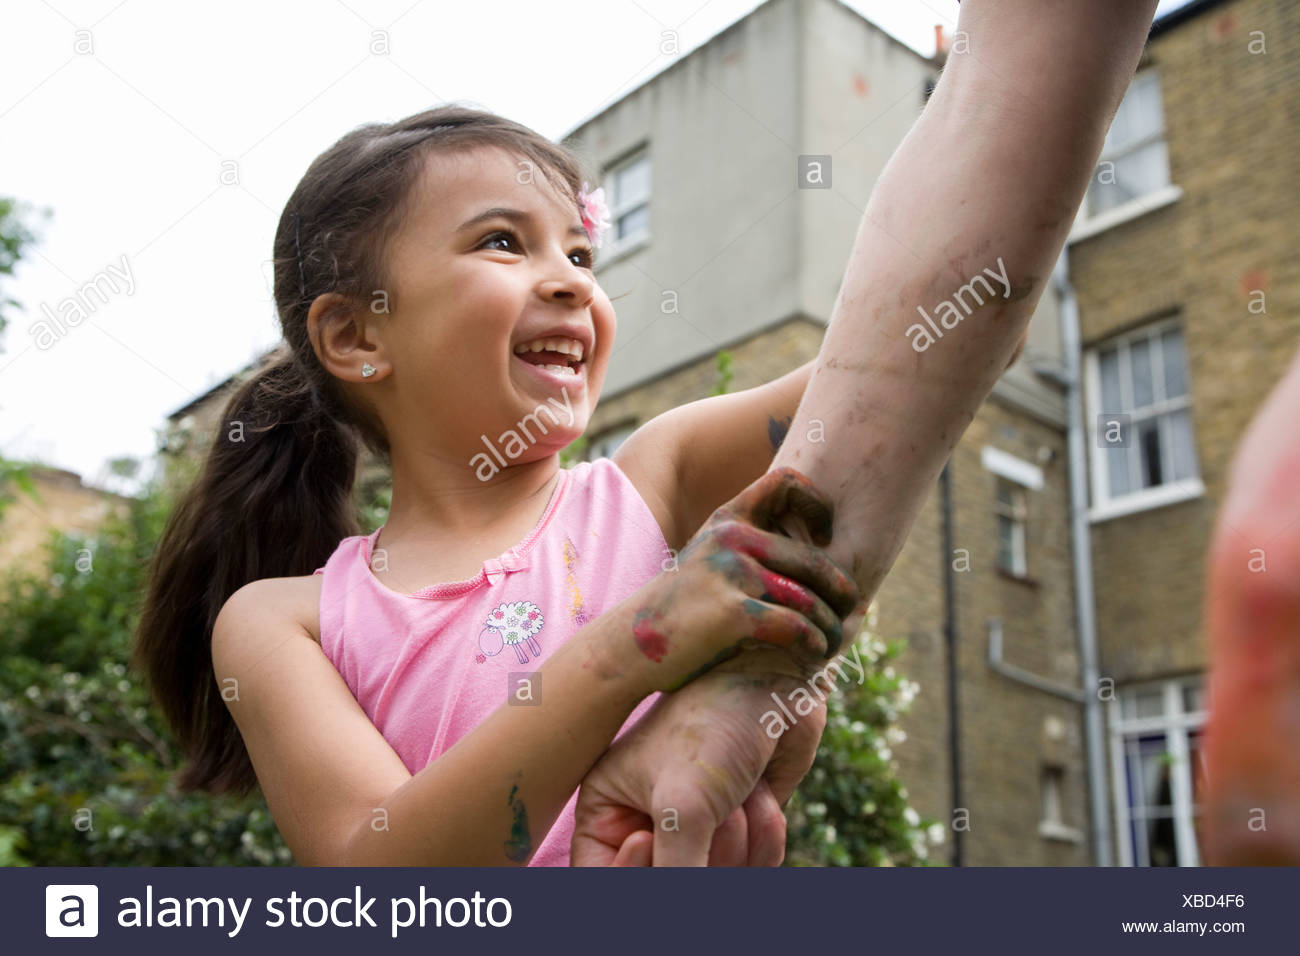 Child & Adult messy play - Stock Image